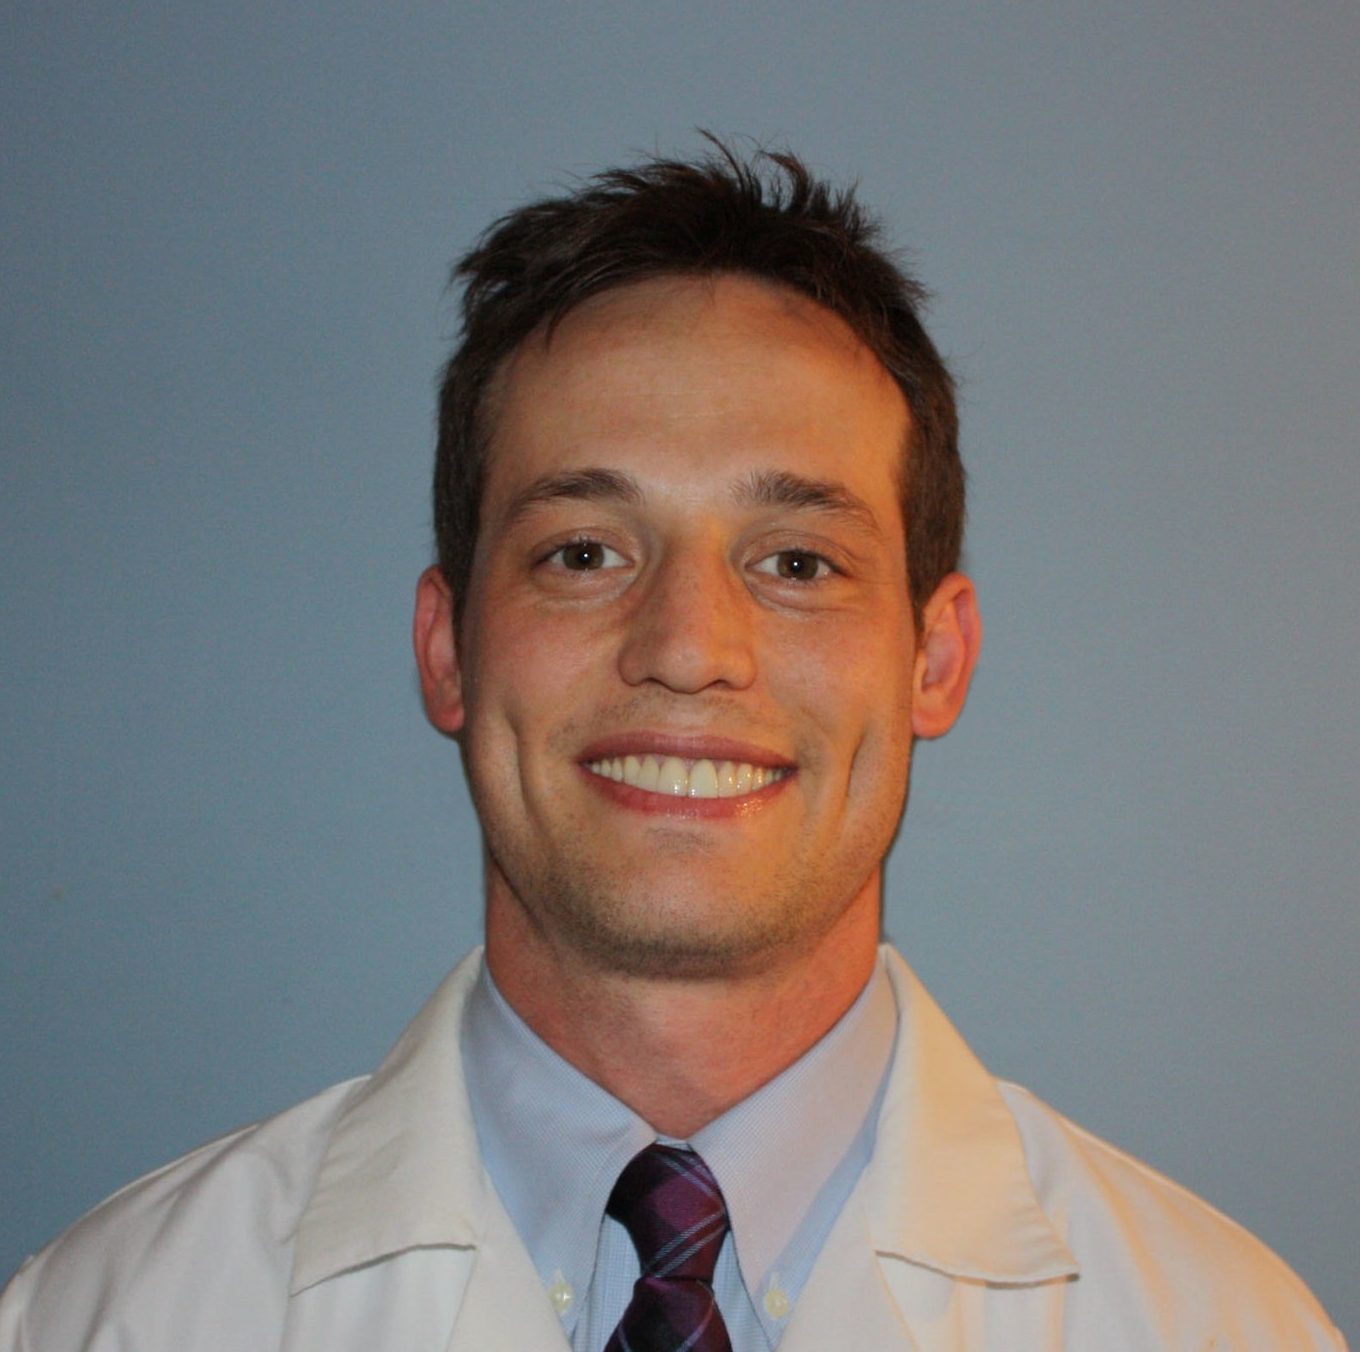 John C. Greenwood, MD   Medical Director - Resuscitation & Critical Care Unit (ResCCU)  Department of Emergency Medicine / Department of Anesthesiology and Critical Care  Assistant Professor, Perelman School of Medicine at the University of Pennsylvania  Philadelphia, PA